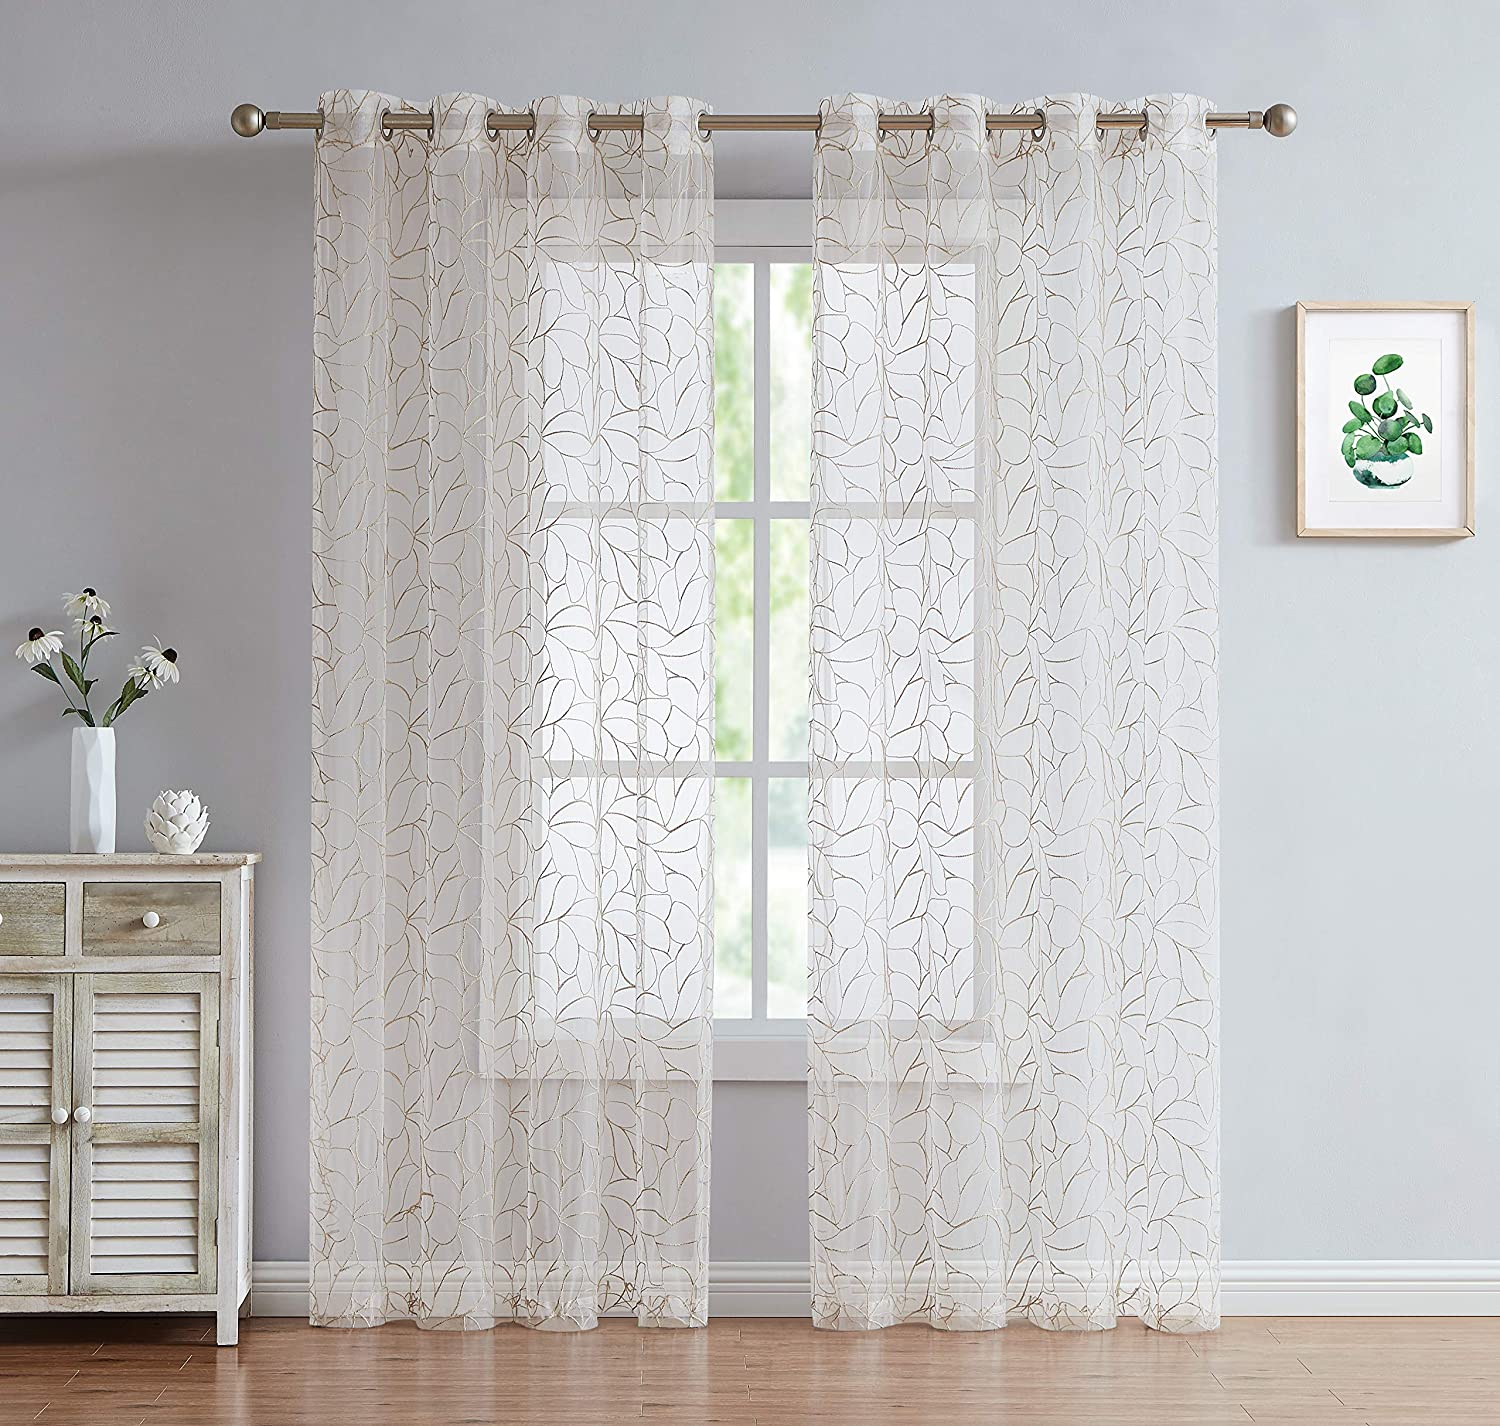 olivia set of two embroidered voile sheer grommet curtain panels for living room bedroom dining rooms 54 w x 84 l linen